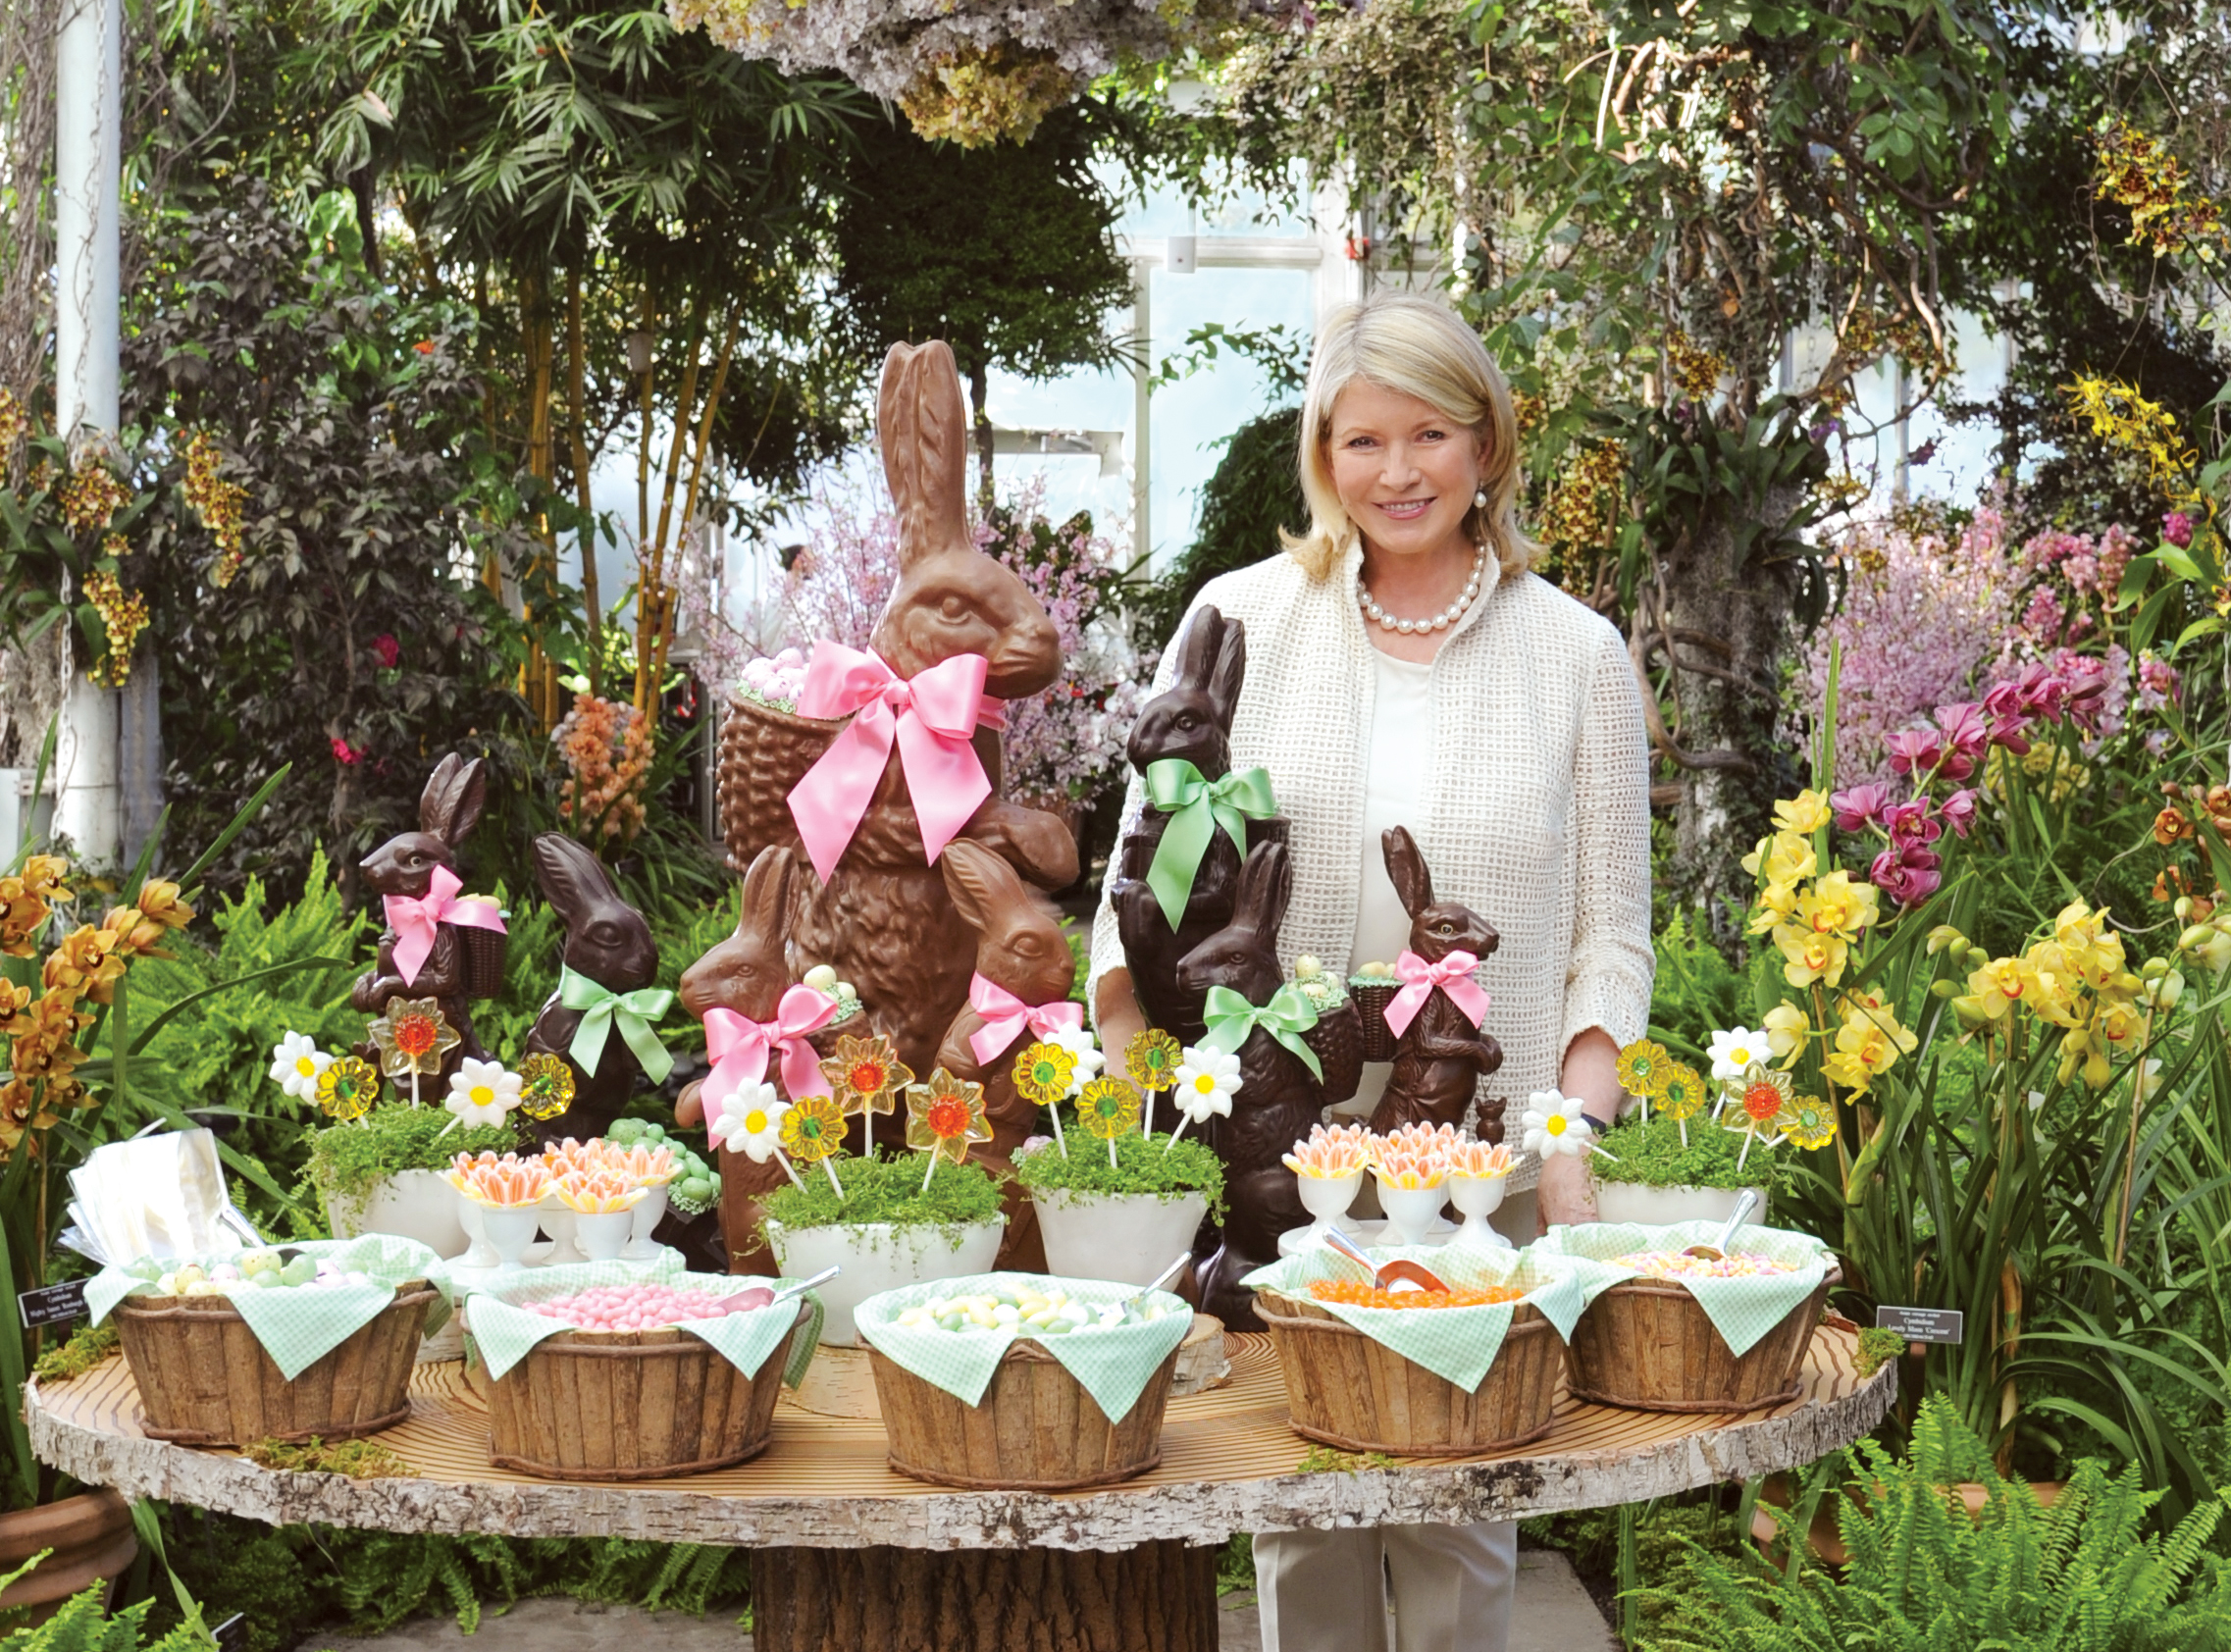 Martha Stewart with Easter Bunnies and Candies